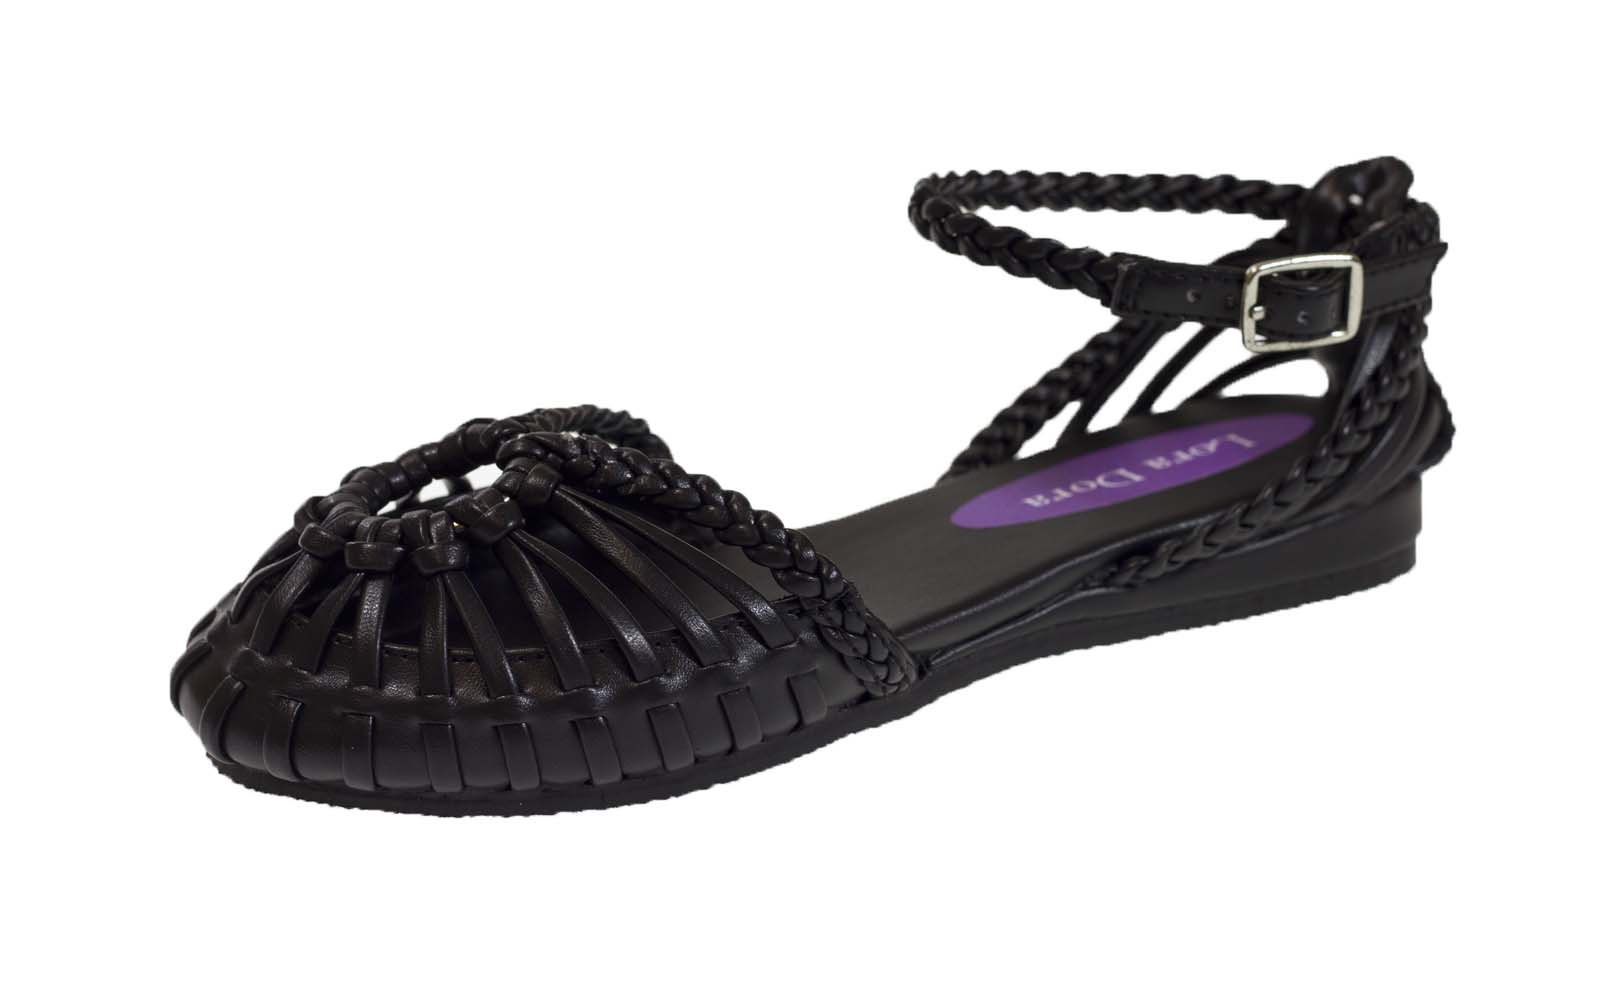 Black sandals holiday - Girls Black Sandals Strappy Faux Leather Open Shoes Summer Holiday Kids Size